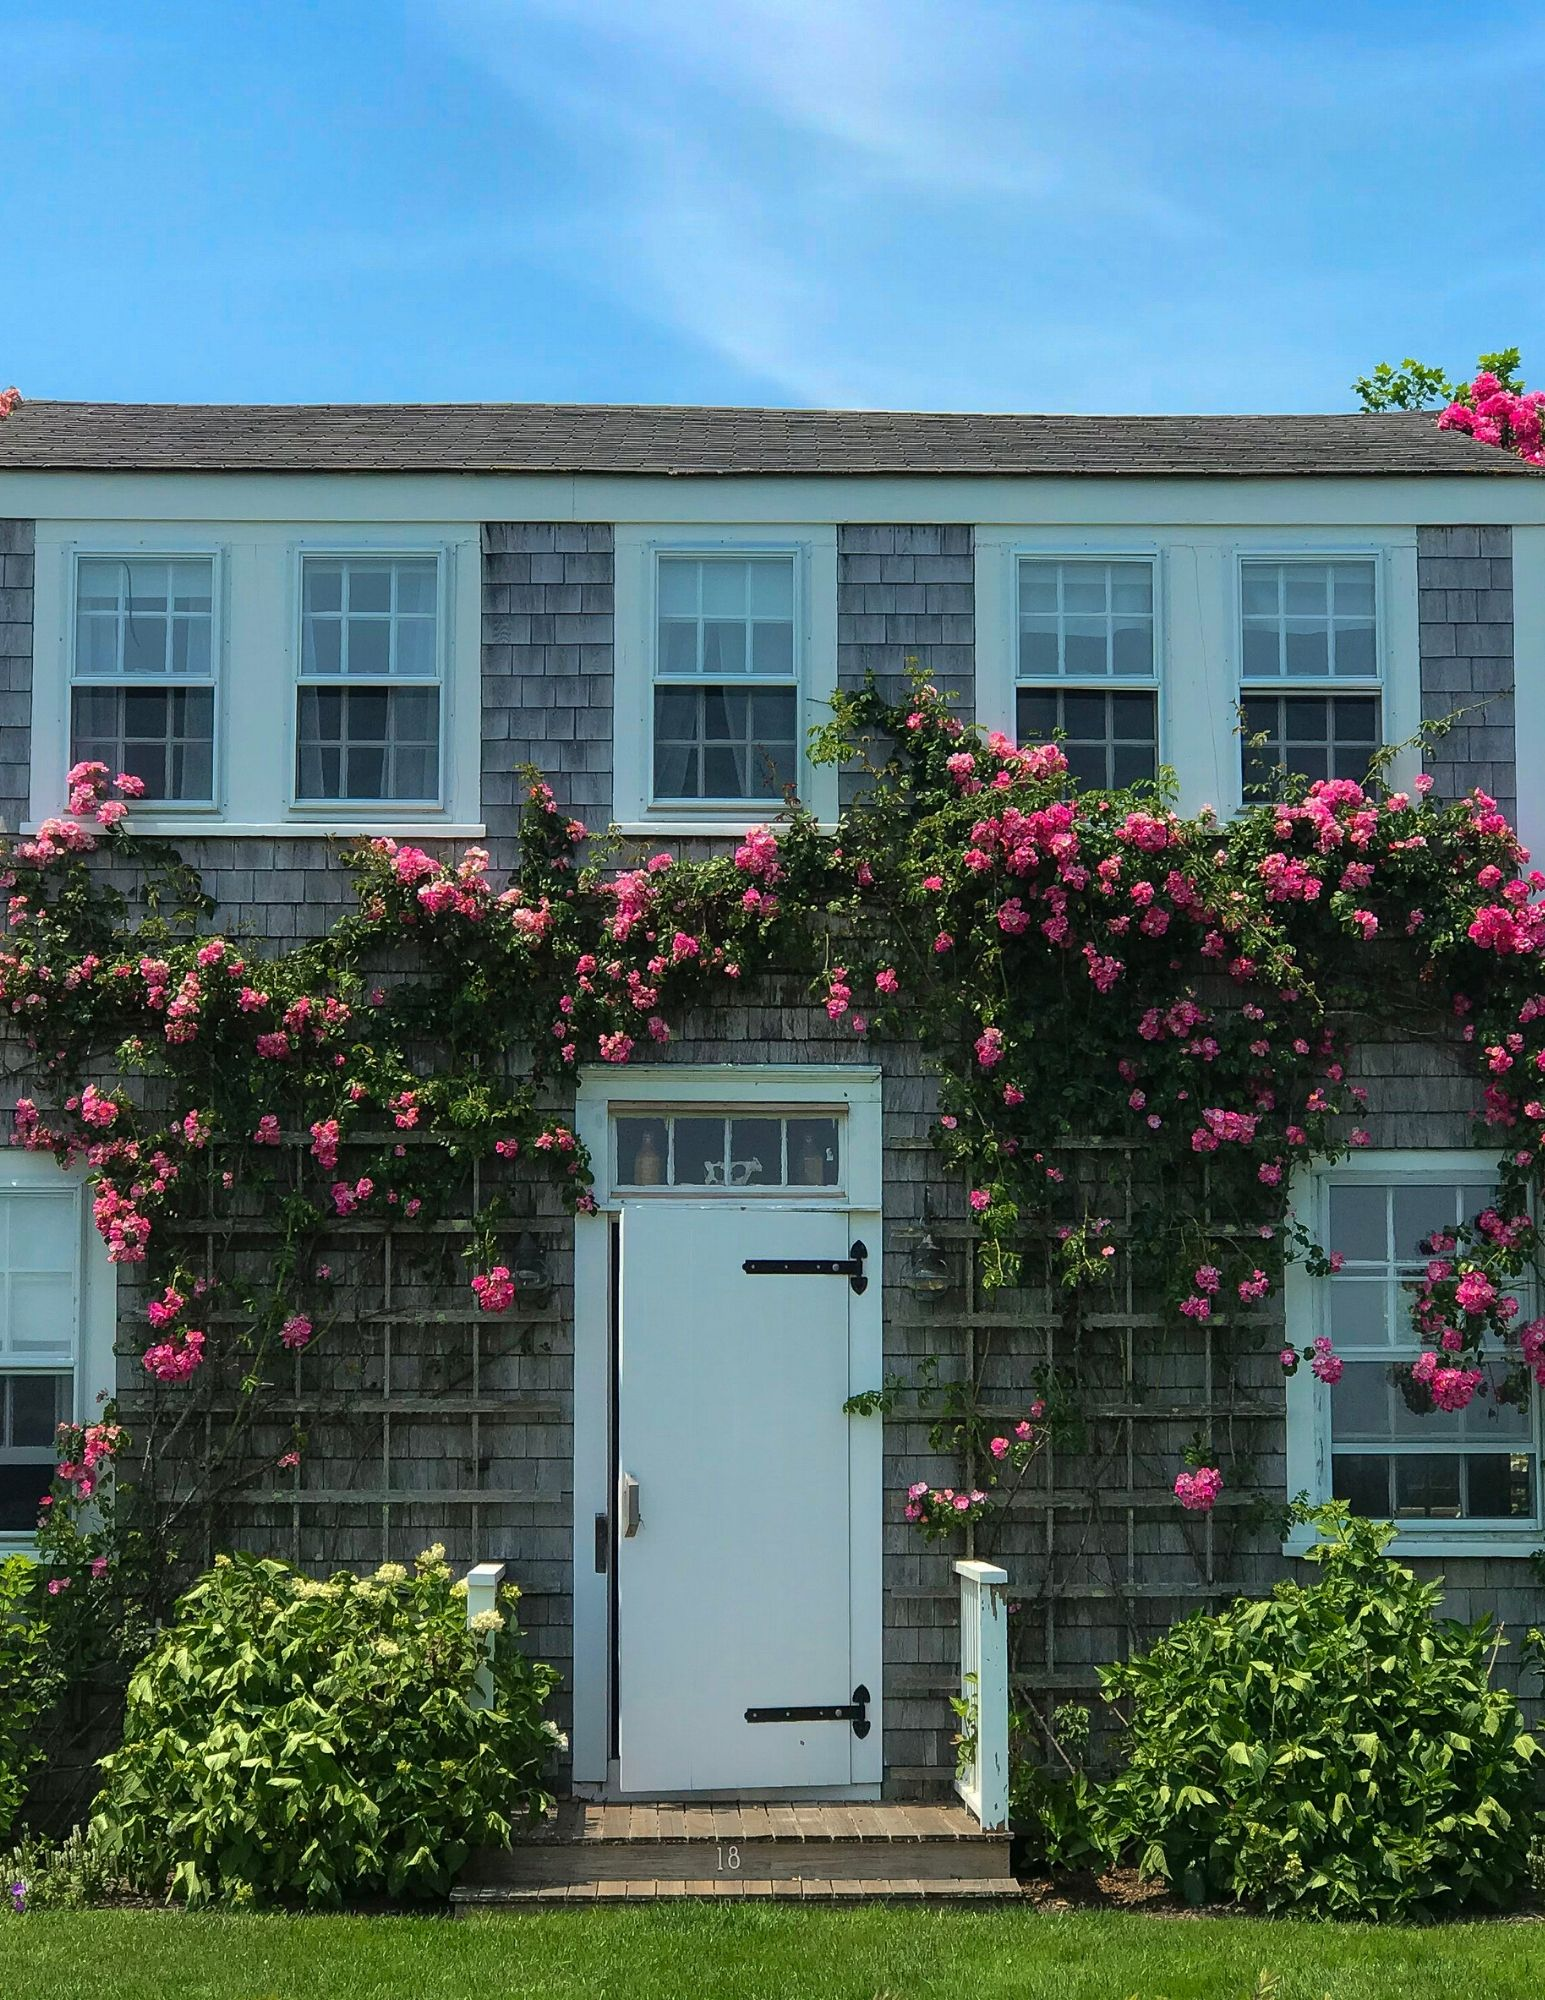 Nantucket Rose Covered Cottages in Sconset-5